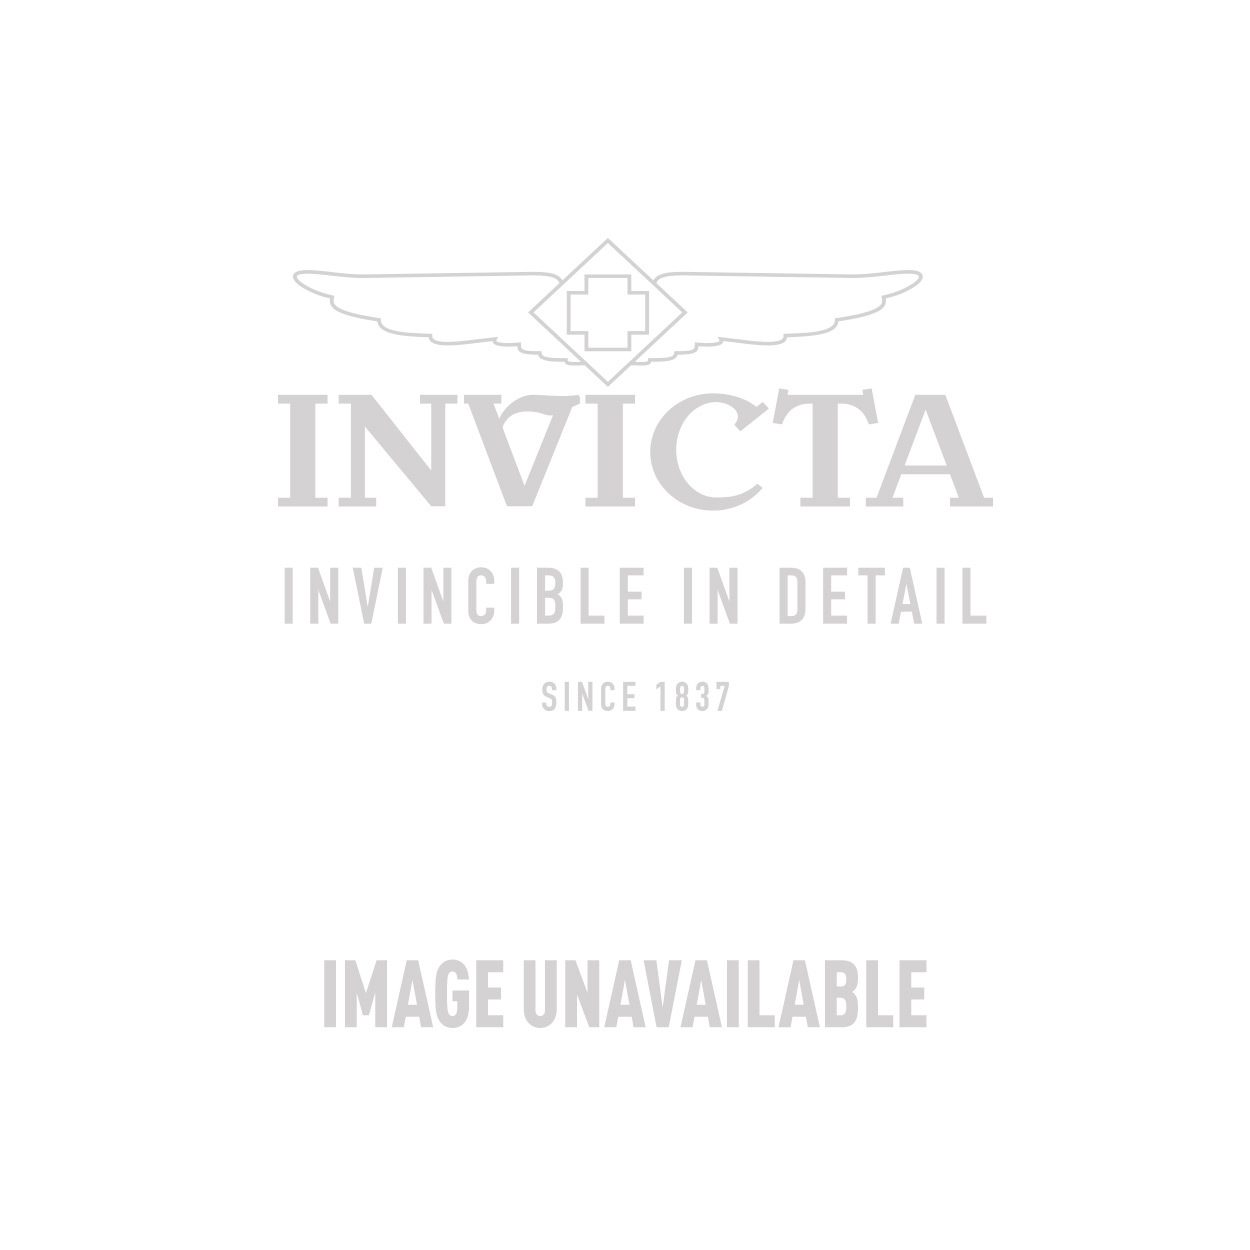 Invicta Russian Diver Swiss Made Quartz Watch - Rose Gold, Black case with Black tone Leather band - Model 12089